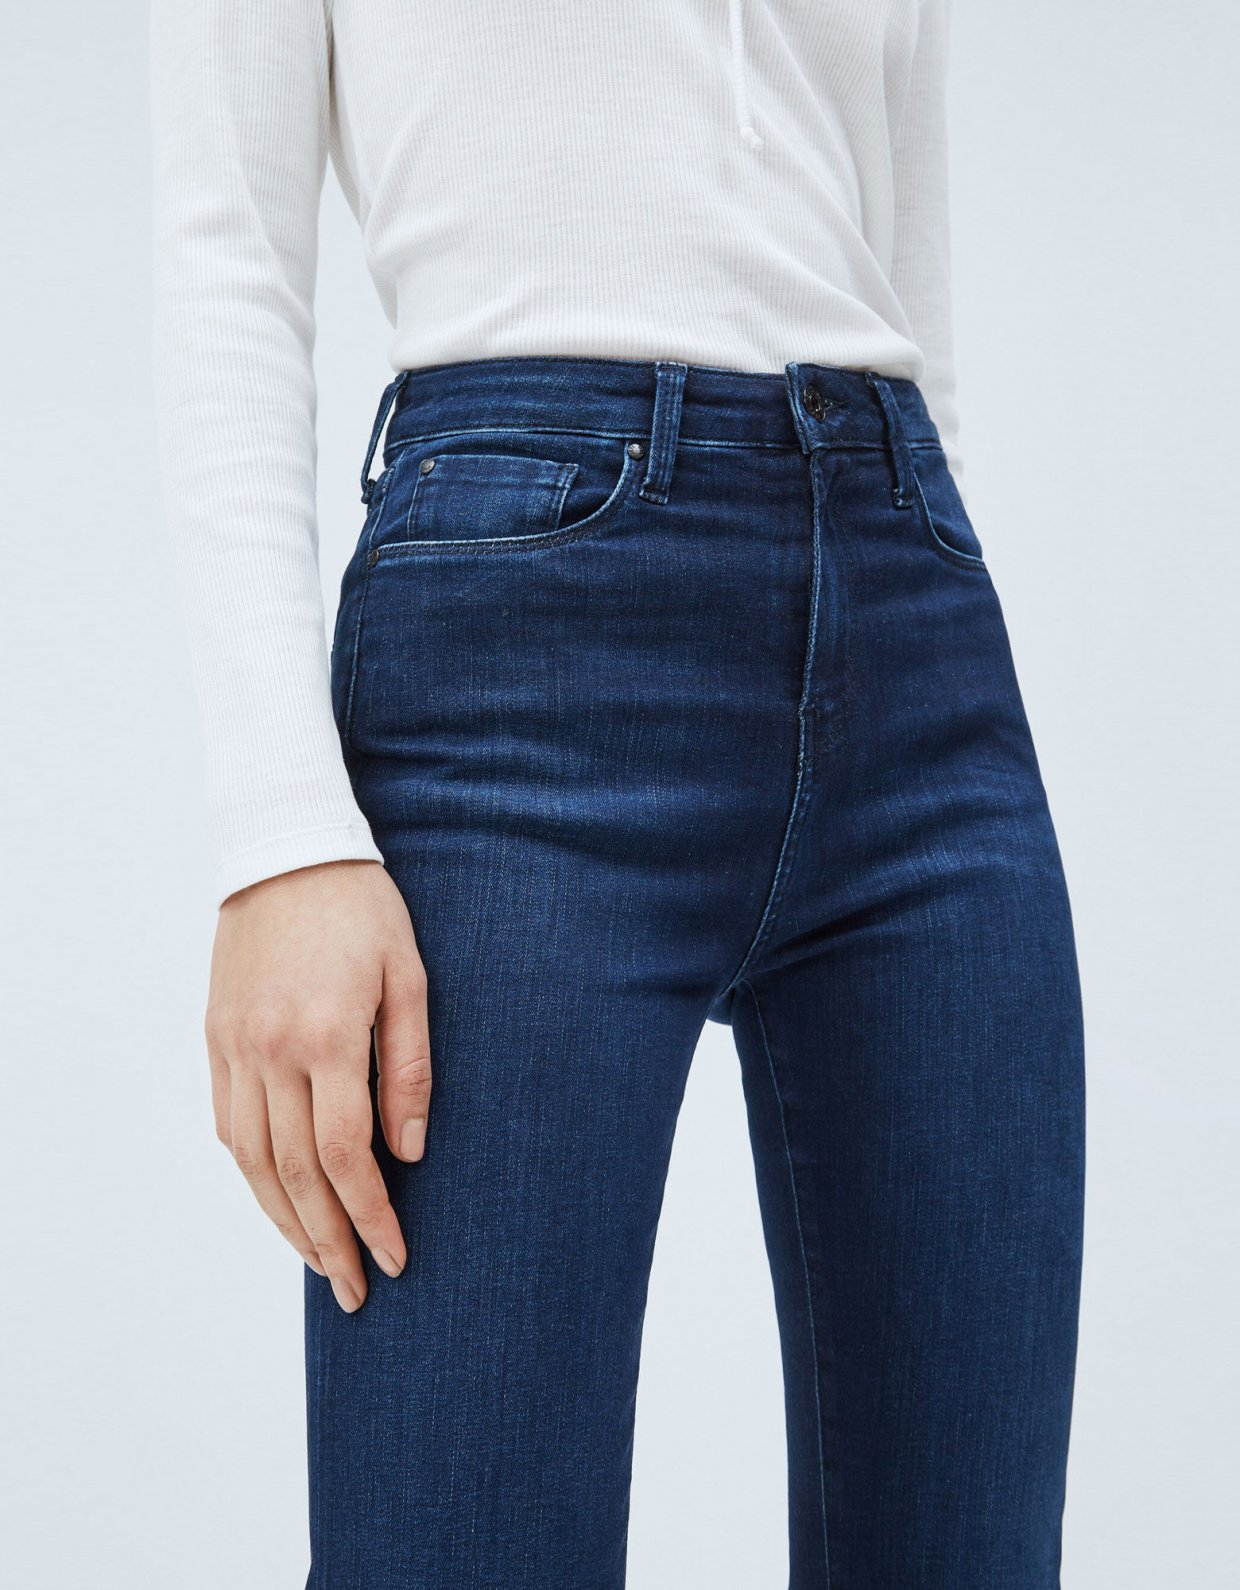 Pepe Jeans Dion flare high-waist jeans